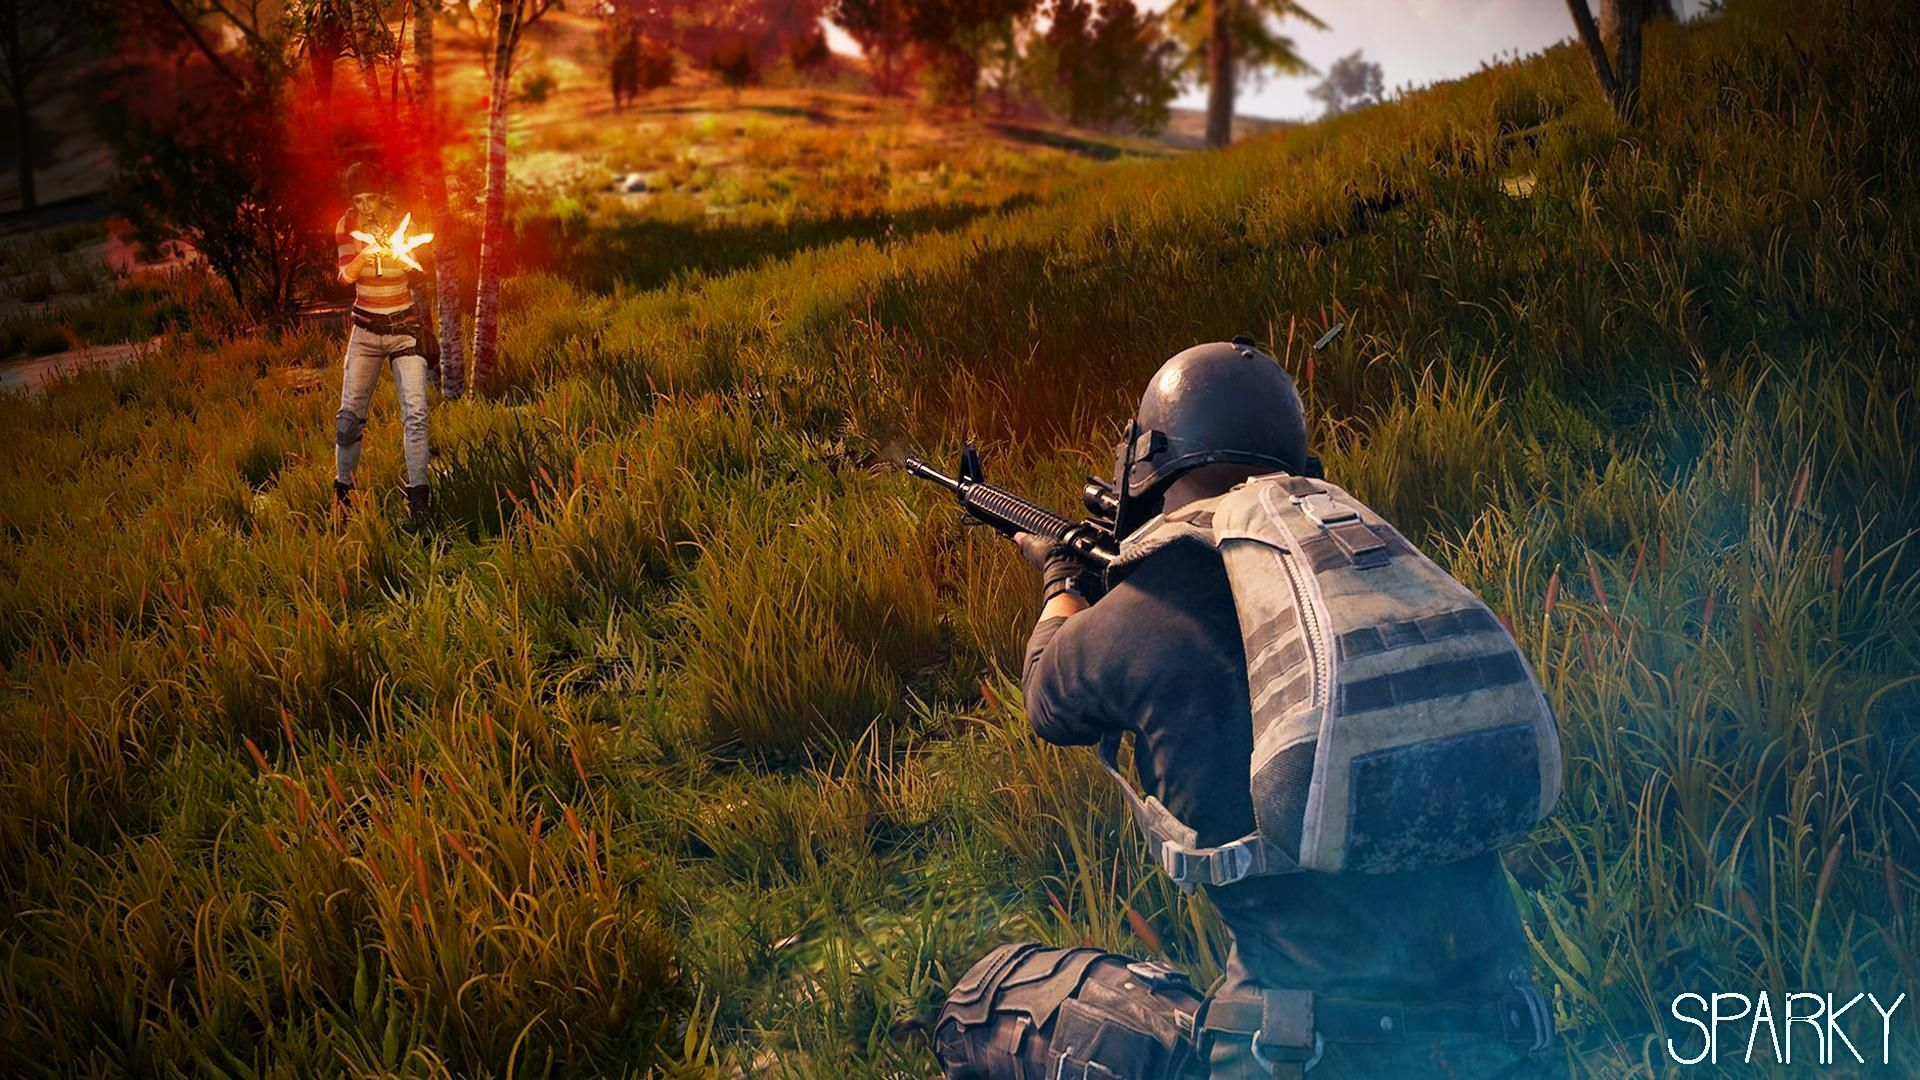 Pubg Wallpaper For Wallpaper Engine: Top Free PUBG 4K Backgrounds